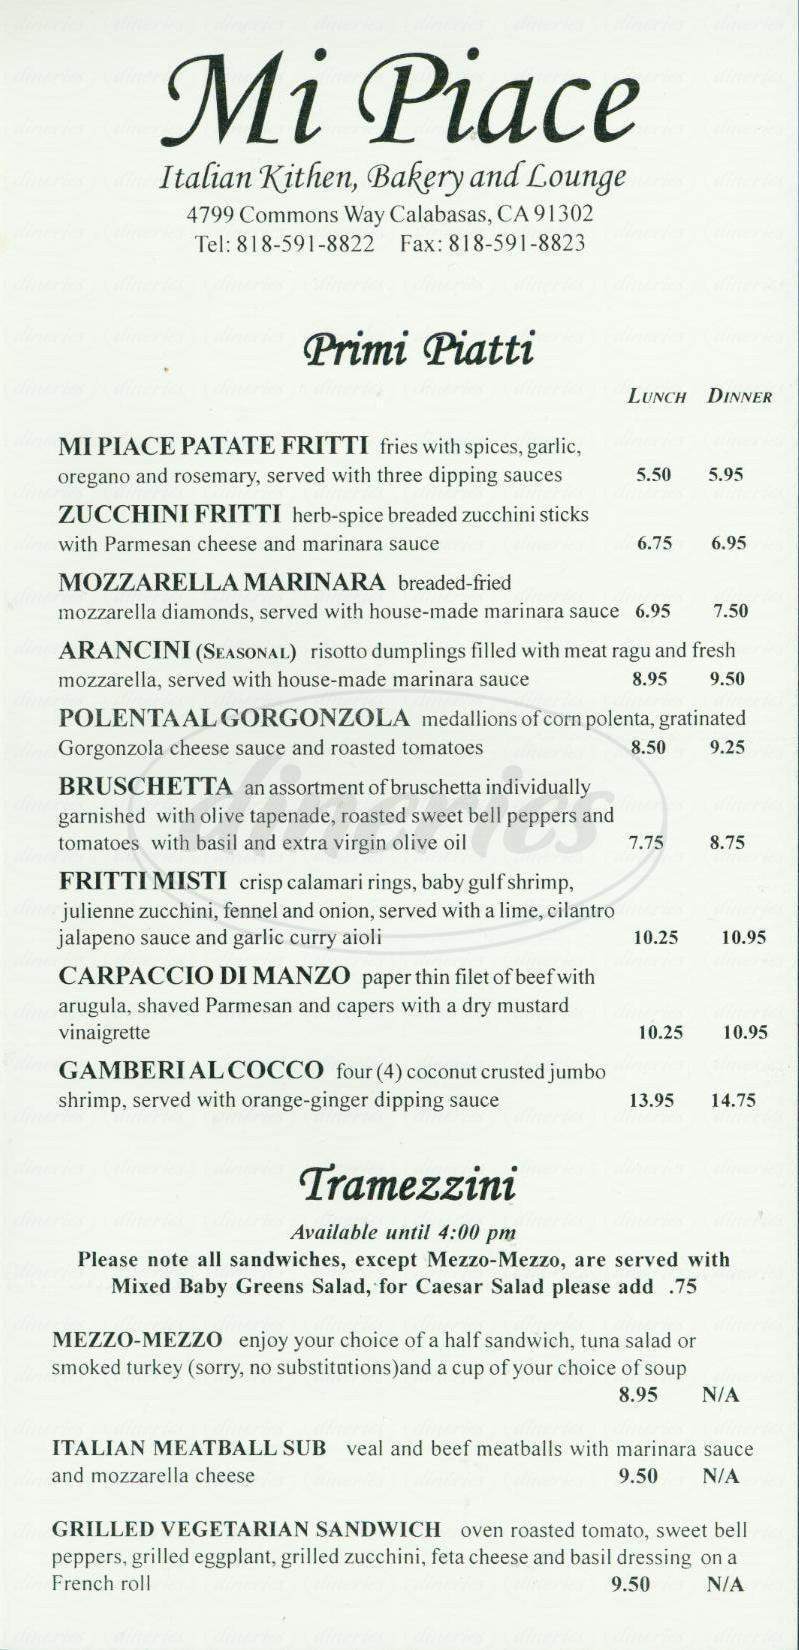 menu for Mi Piace